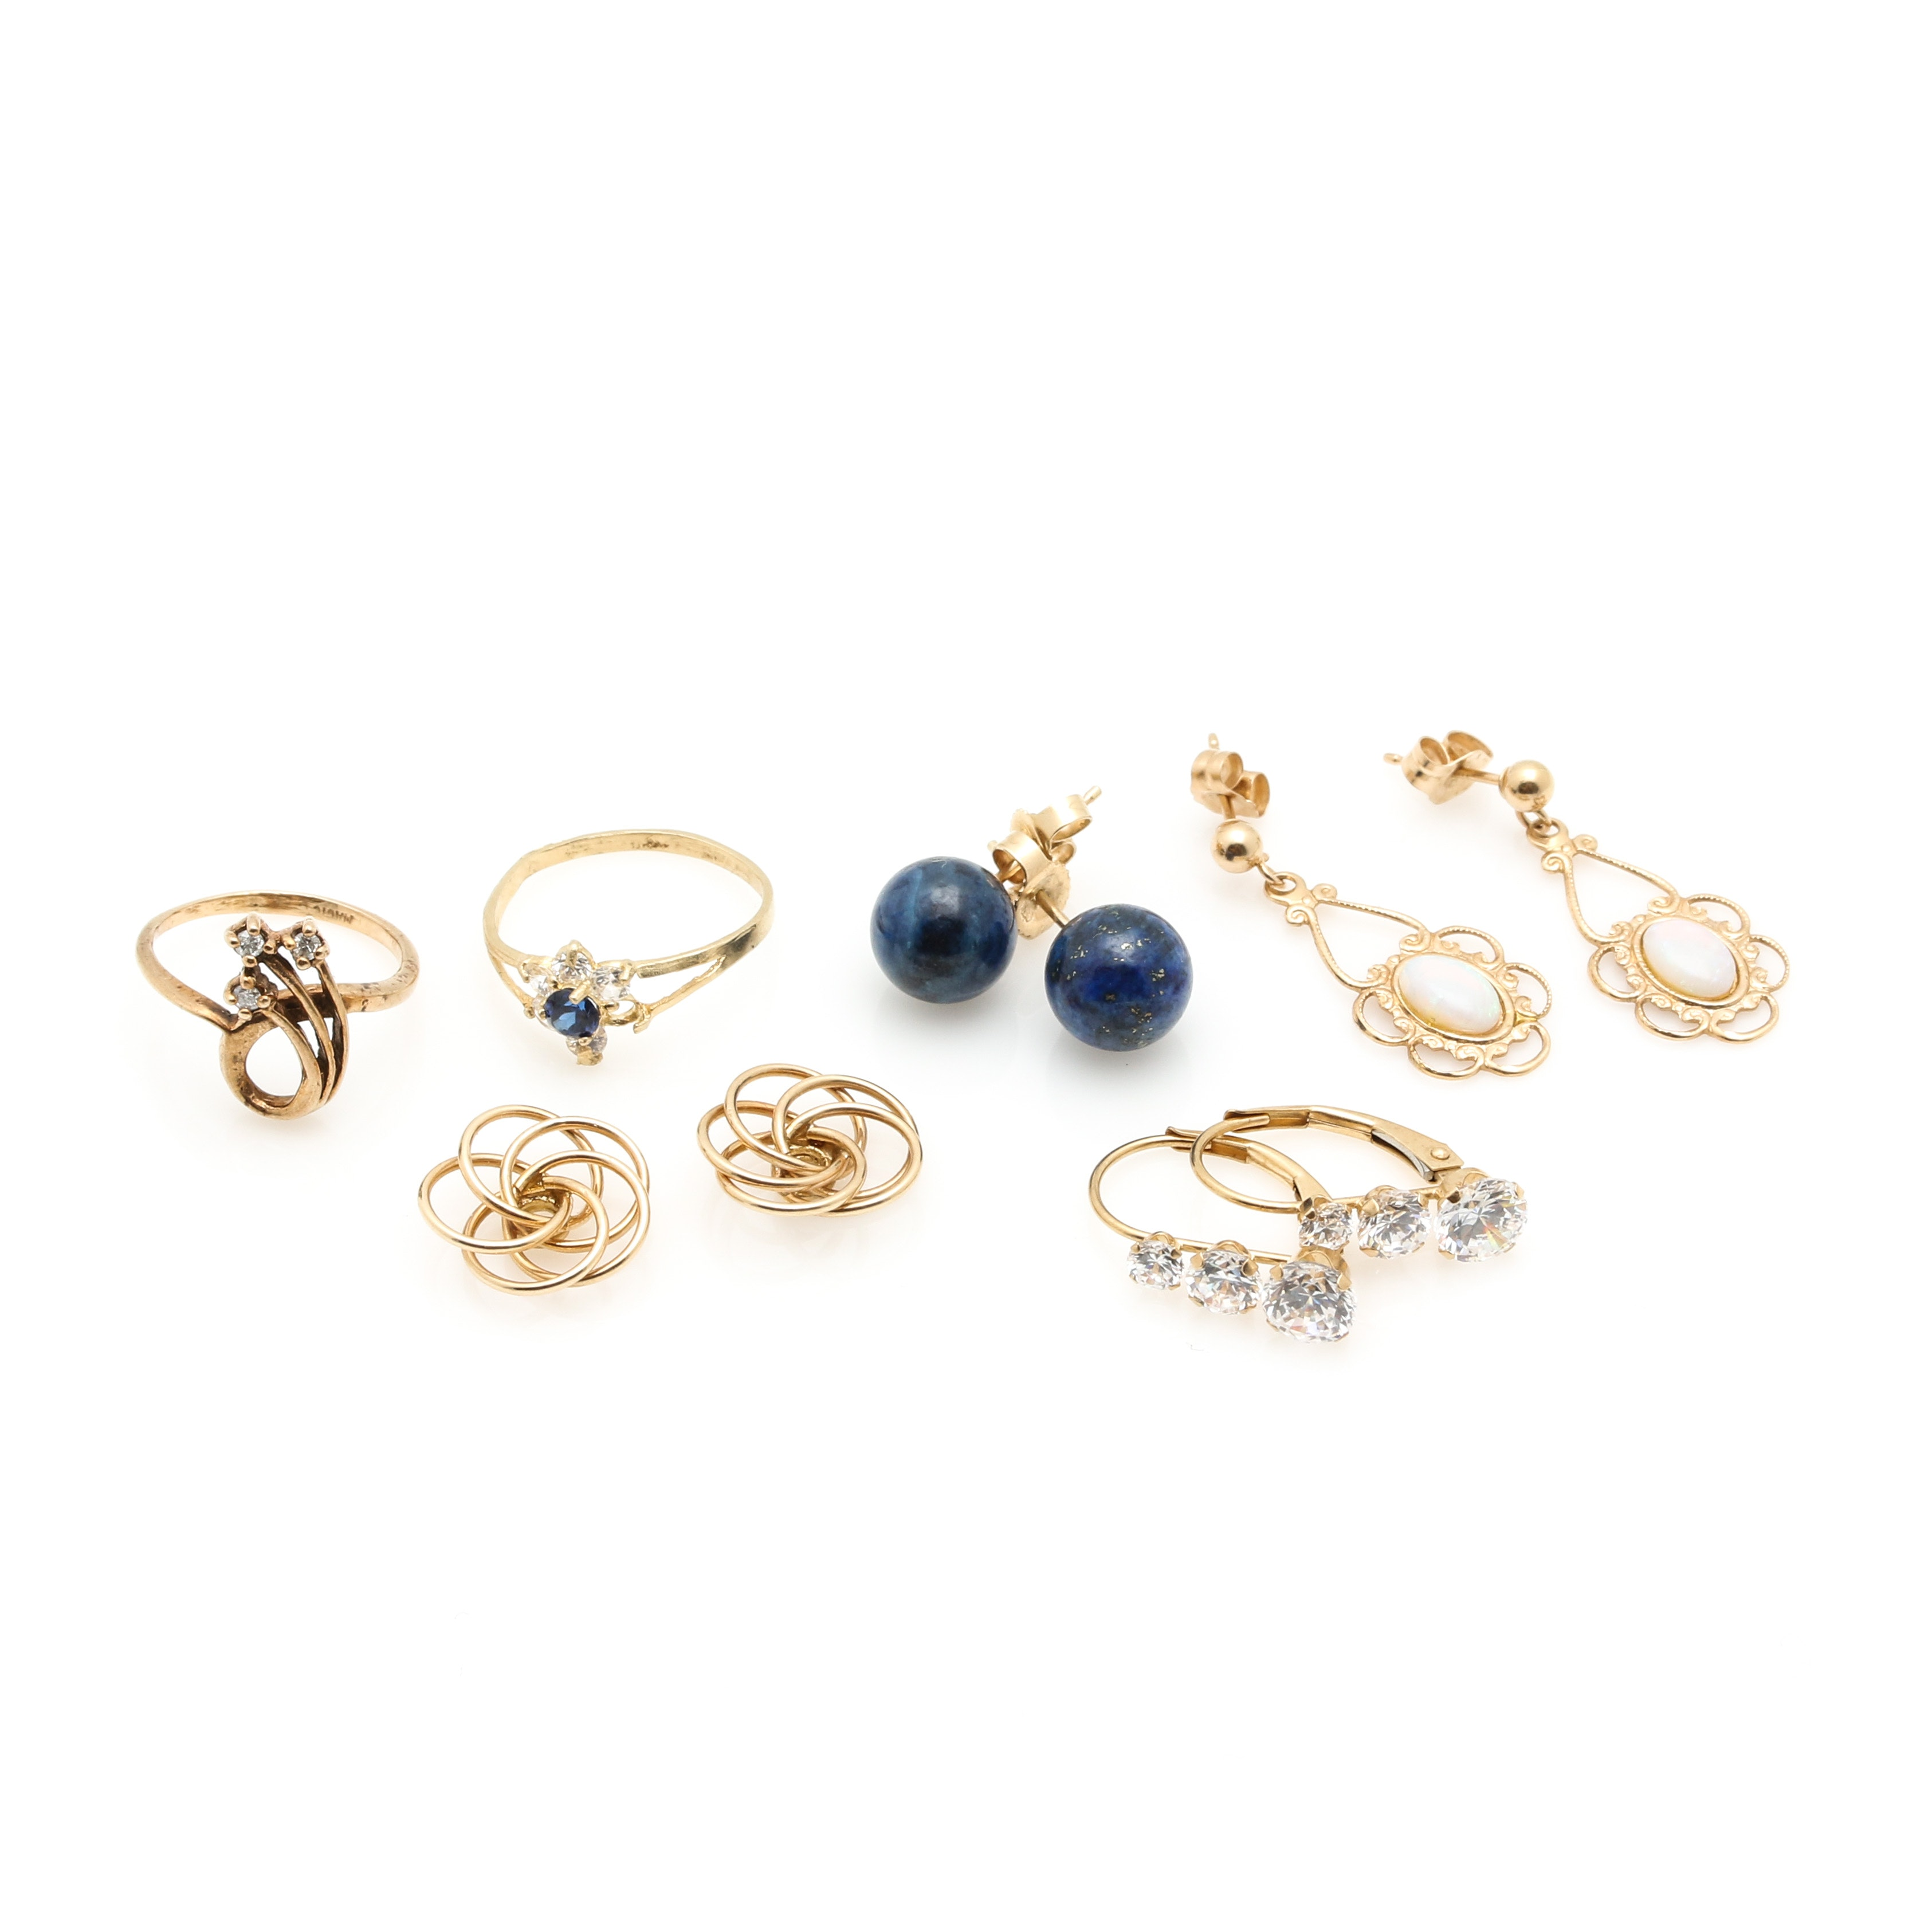 10K and 14K Yellow Gold Diamond and Gemstone Jewelry Selection